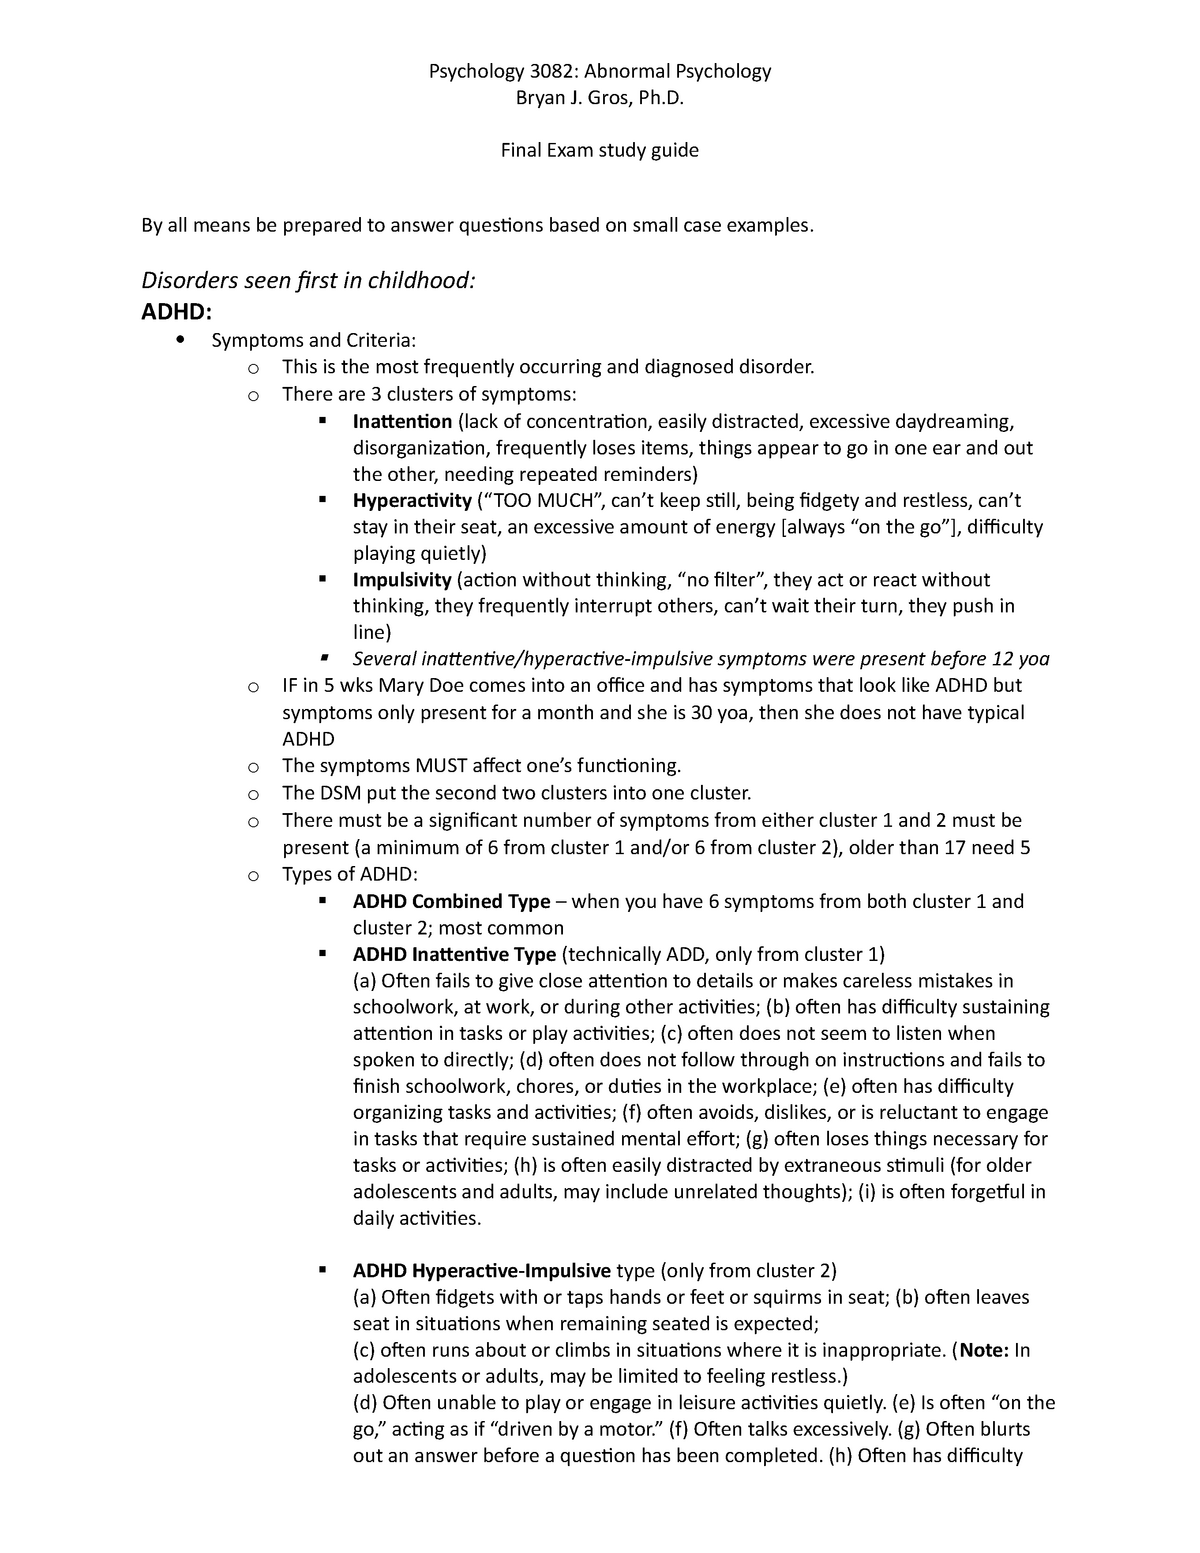 Abnormal final study guide - PSYC 3082: Introduction to